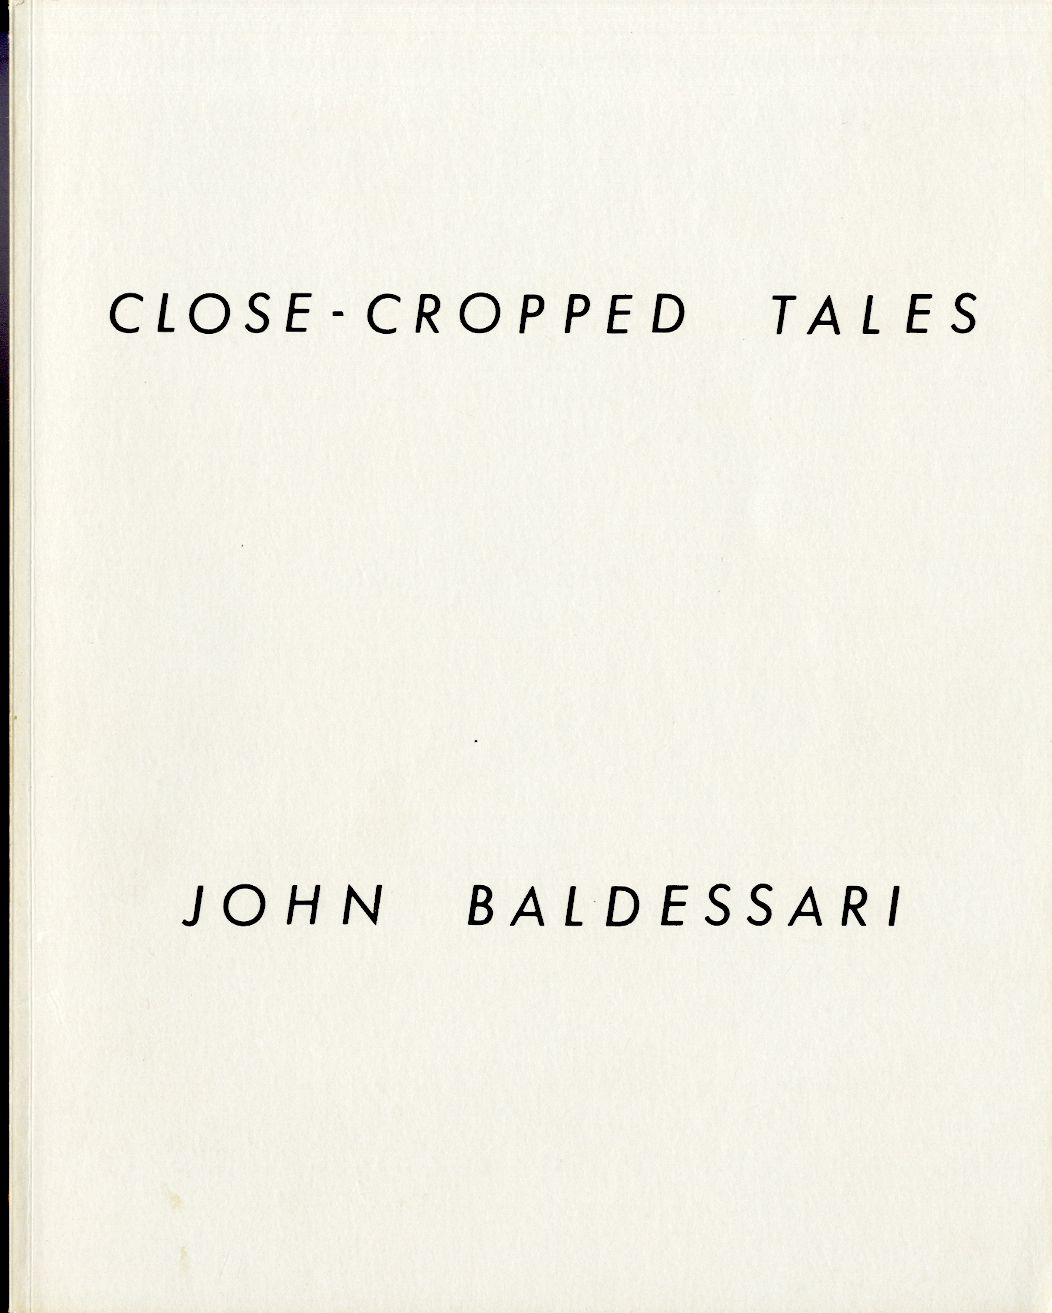 Close-cropped tales